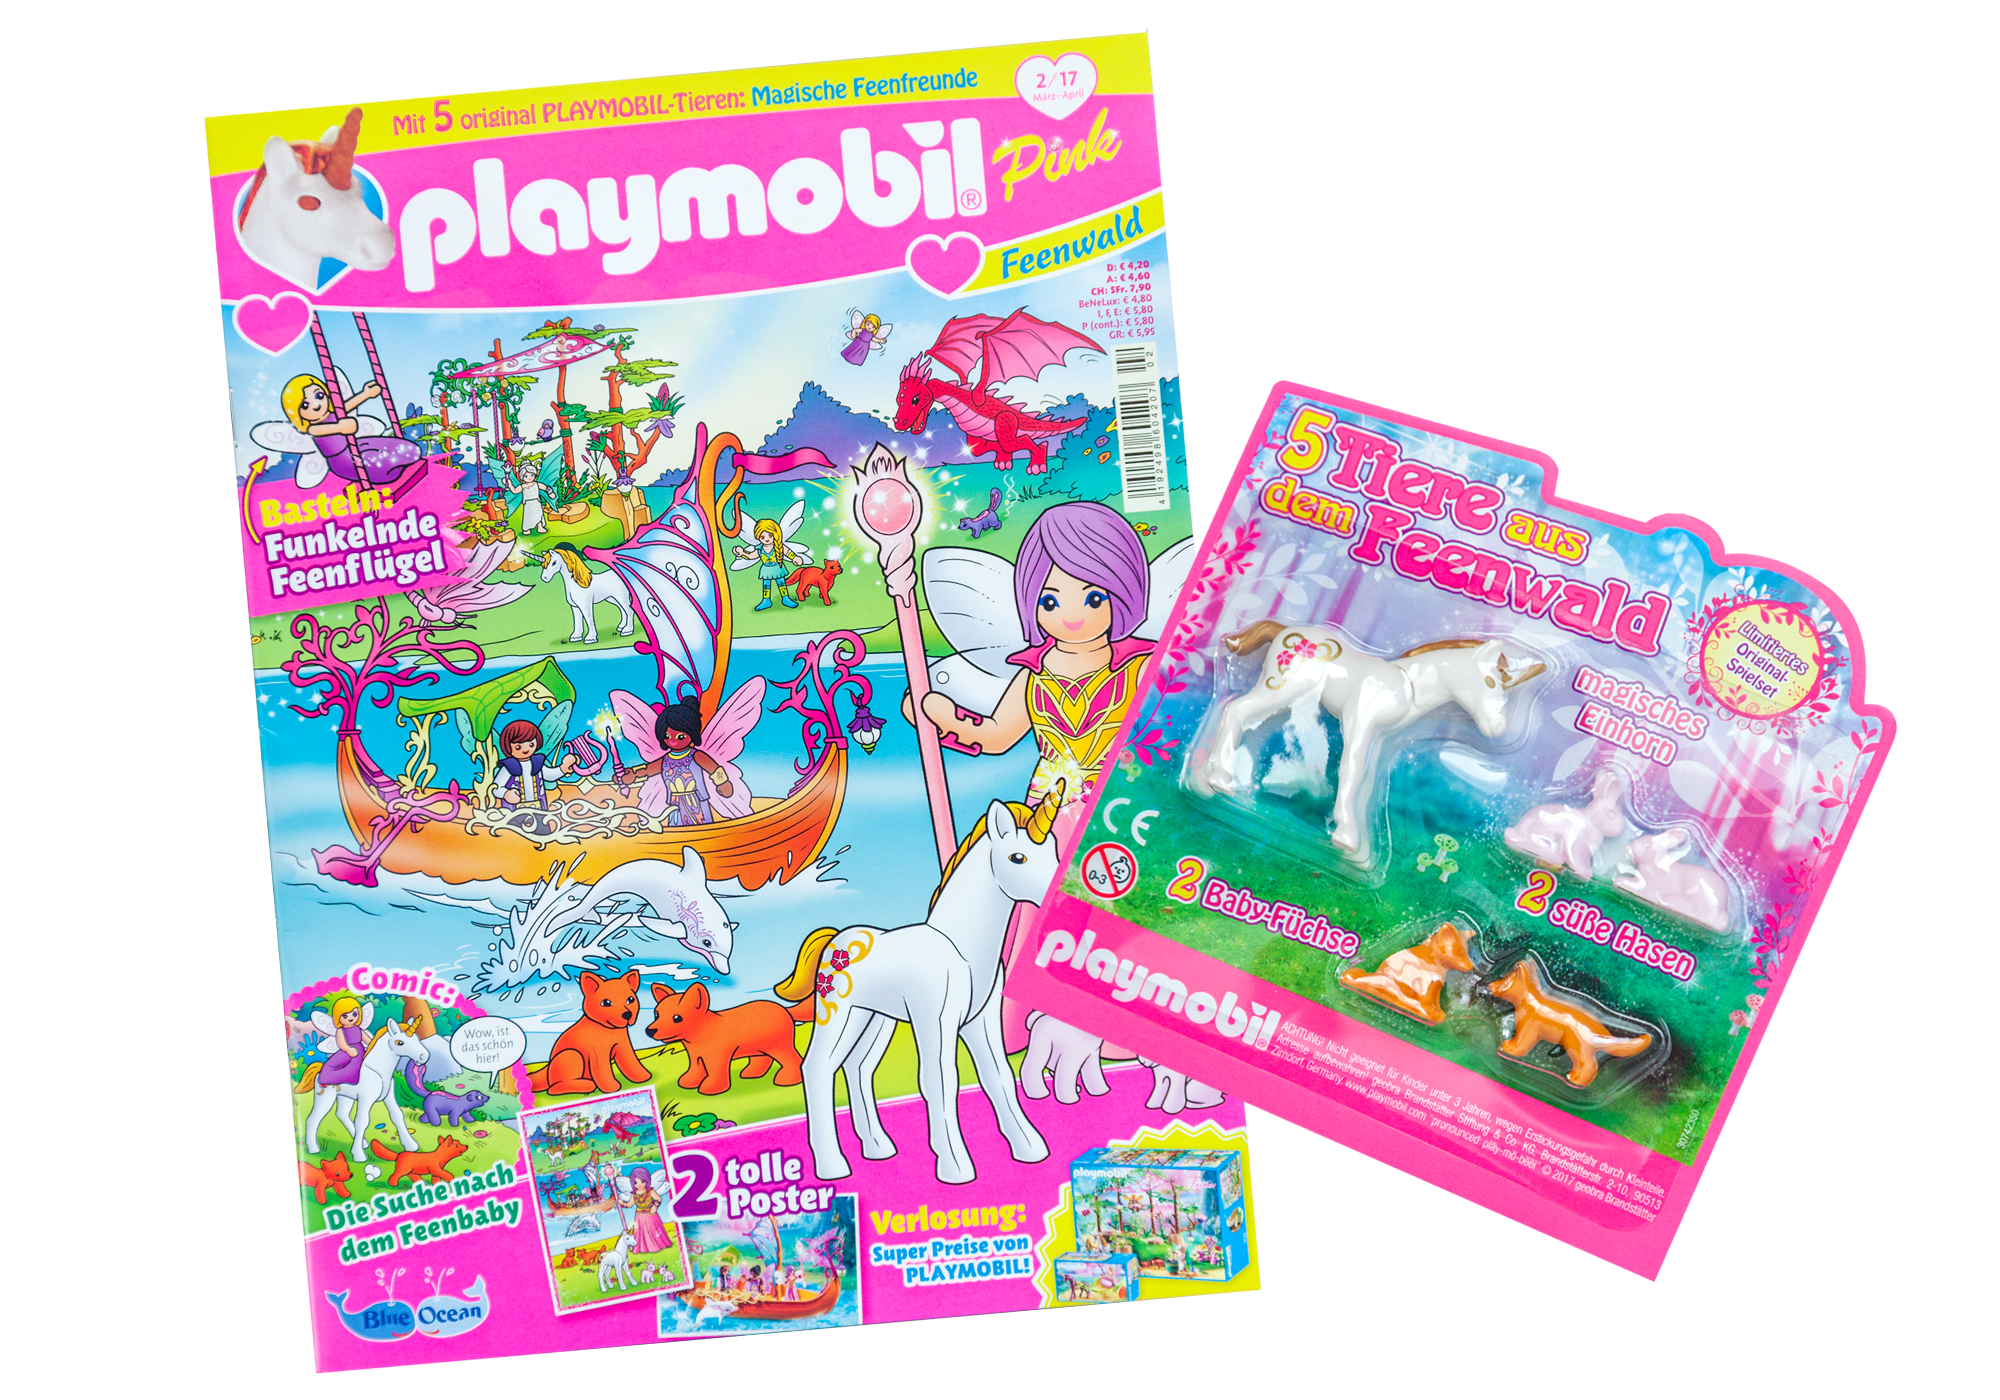 http://media.playmobil.com/i/playmobil/80587_product_detail/PLAYMOBIL-Magazin Pink 2/2017 (Heft 27)